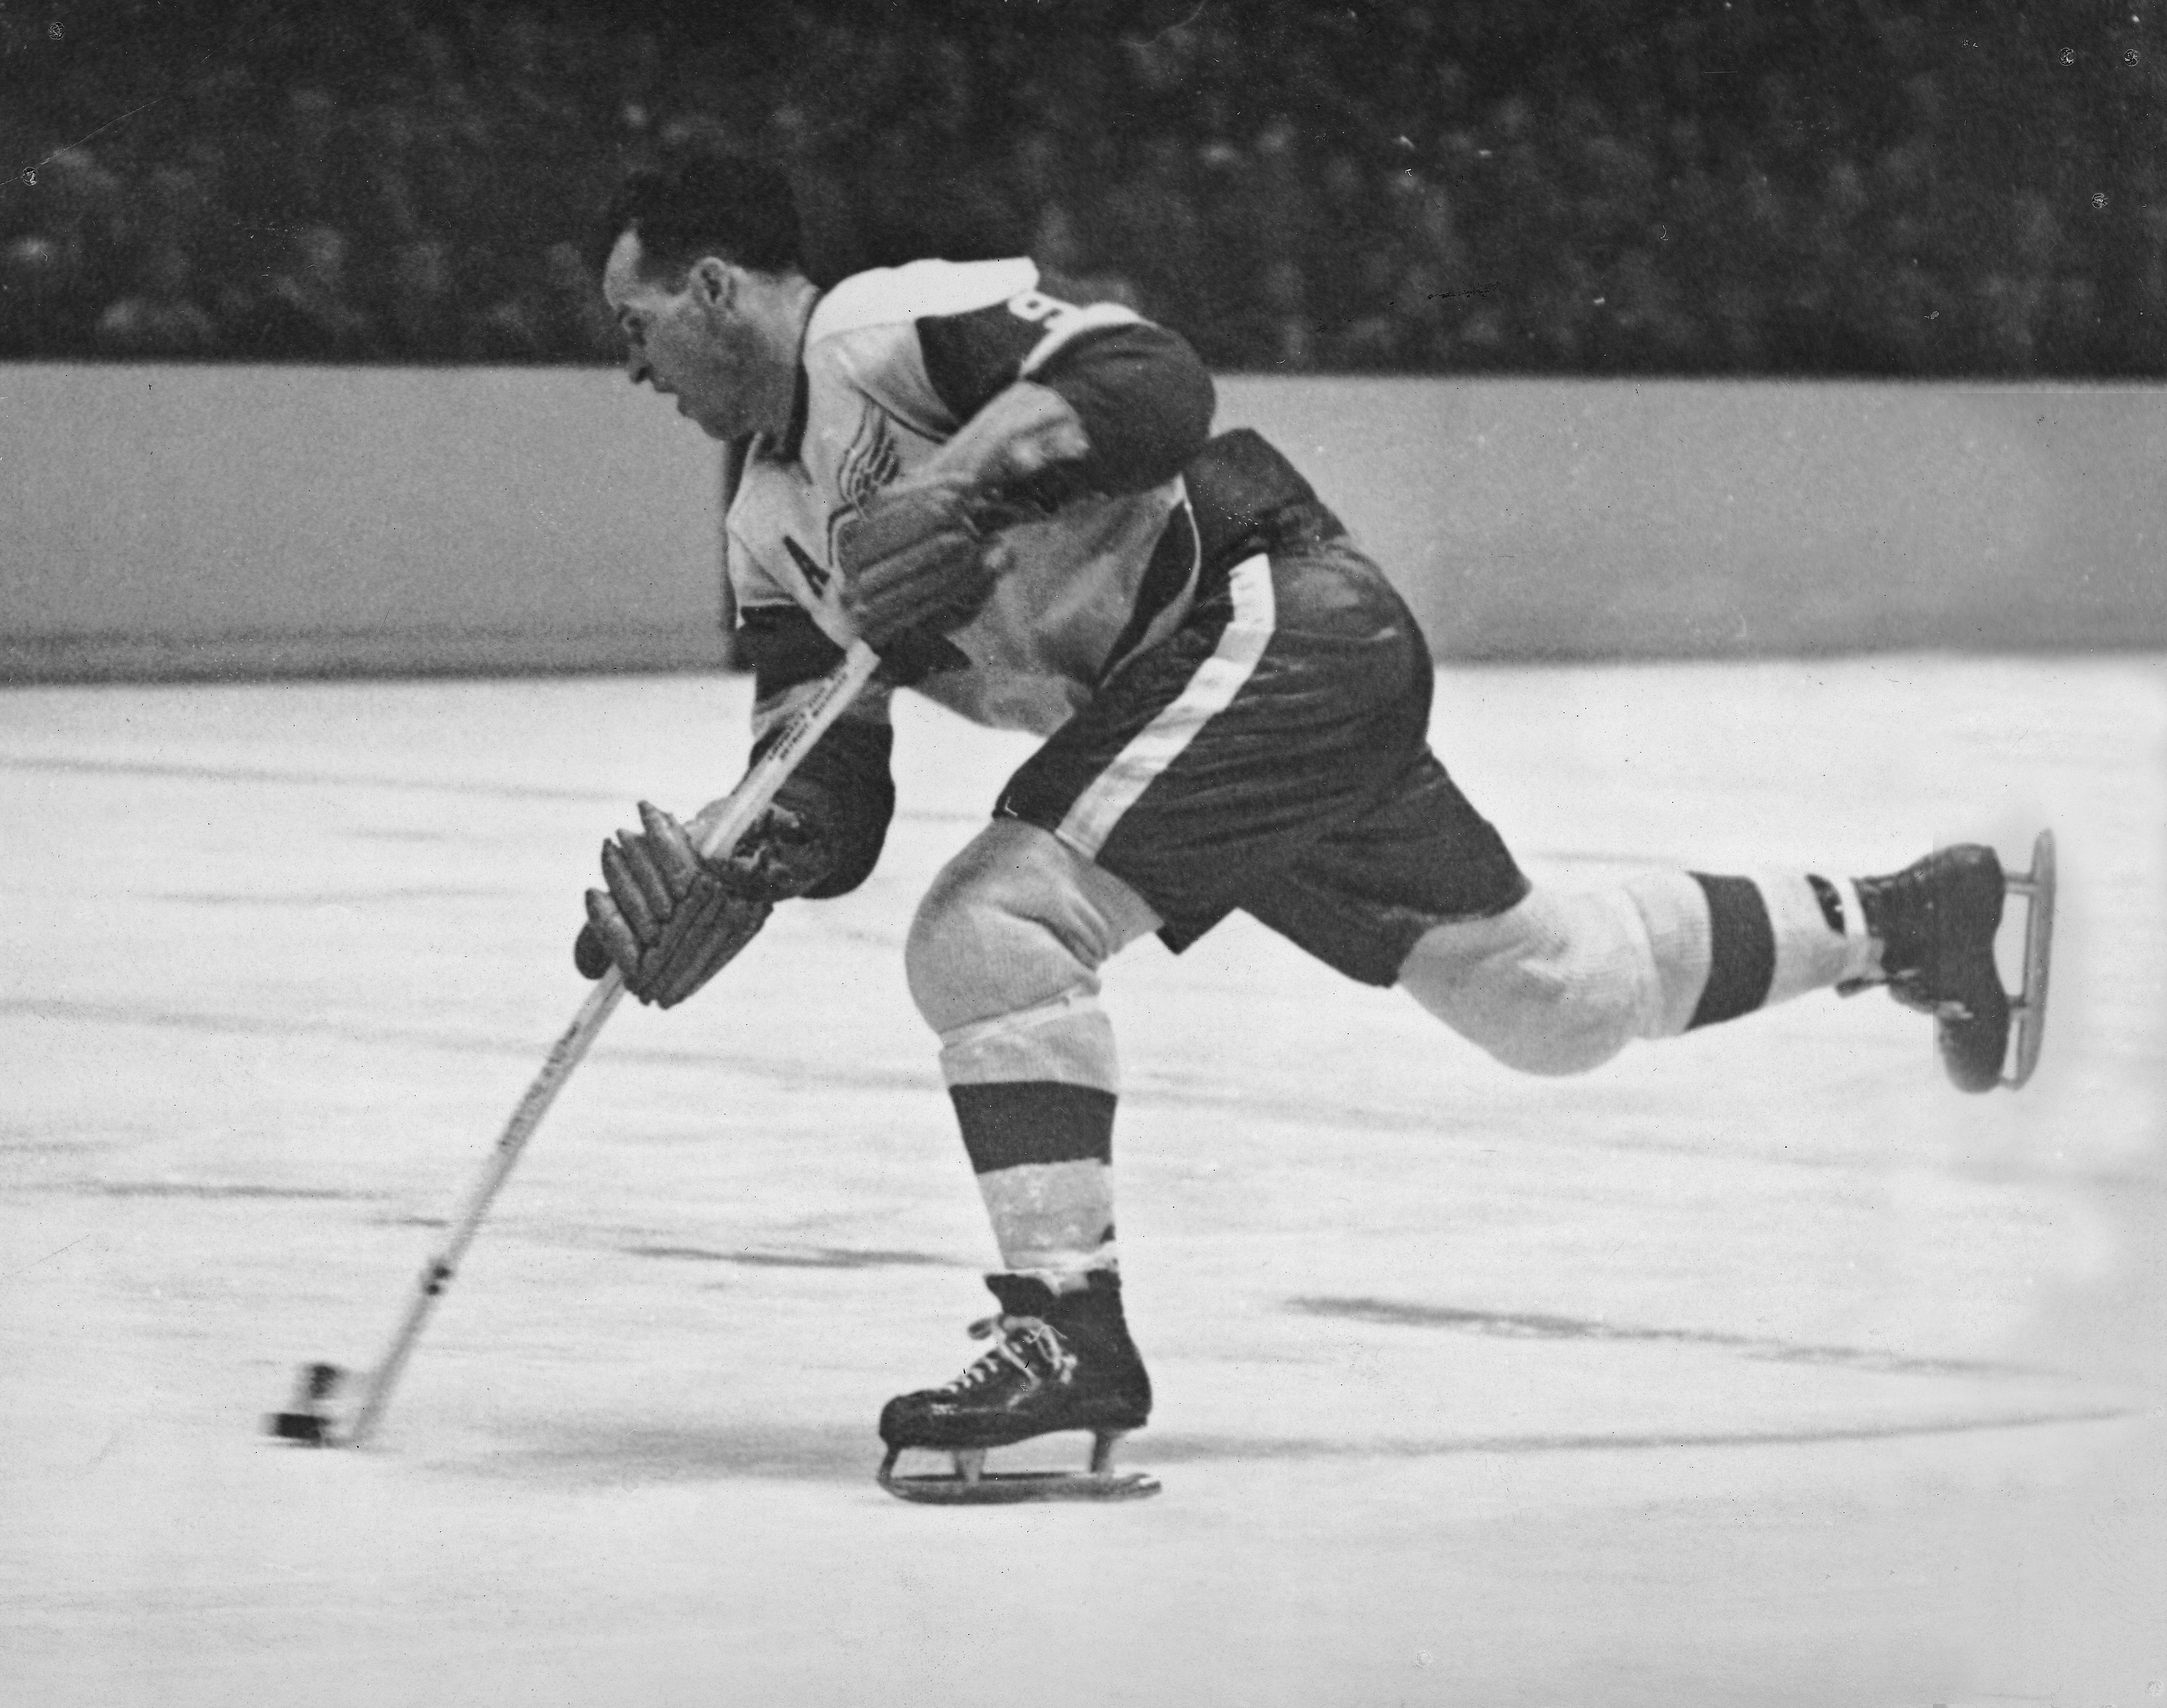 Canadian hockey player Gordie Howe of the Detroit Red Wings fires a shot during a game, late 1950s or early 1960s. GETTY IMAGES/Robert Riger